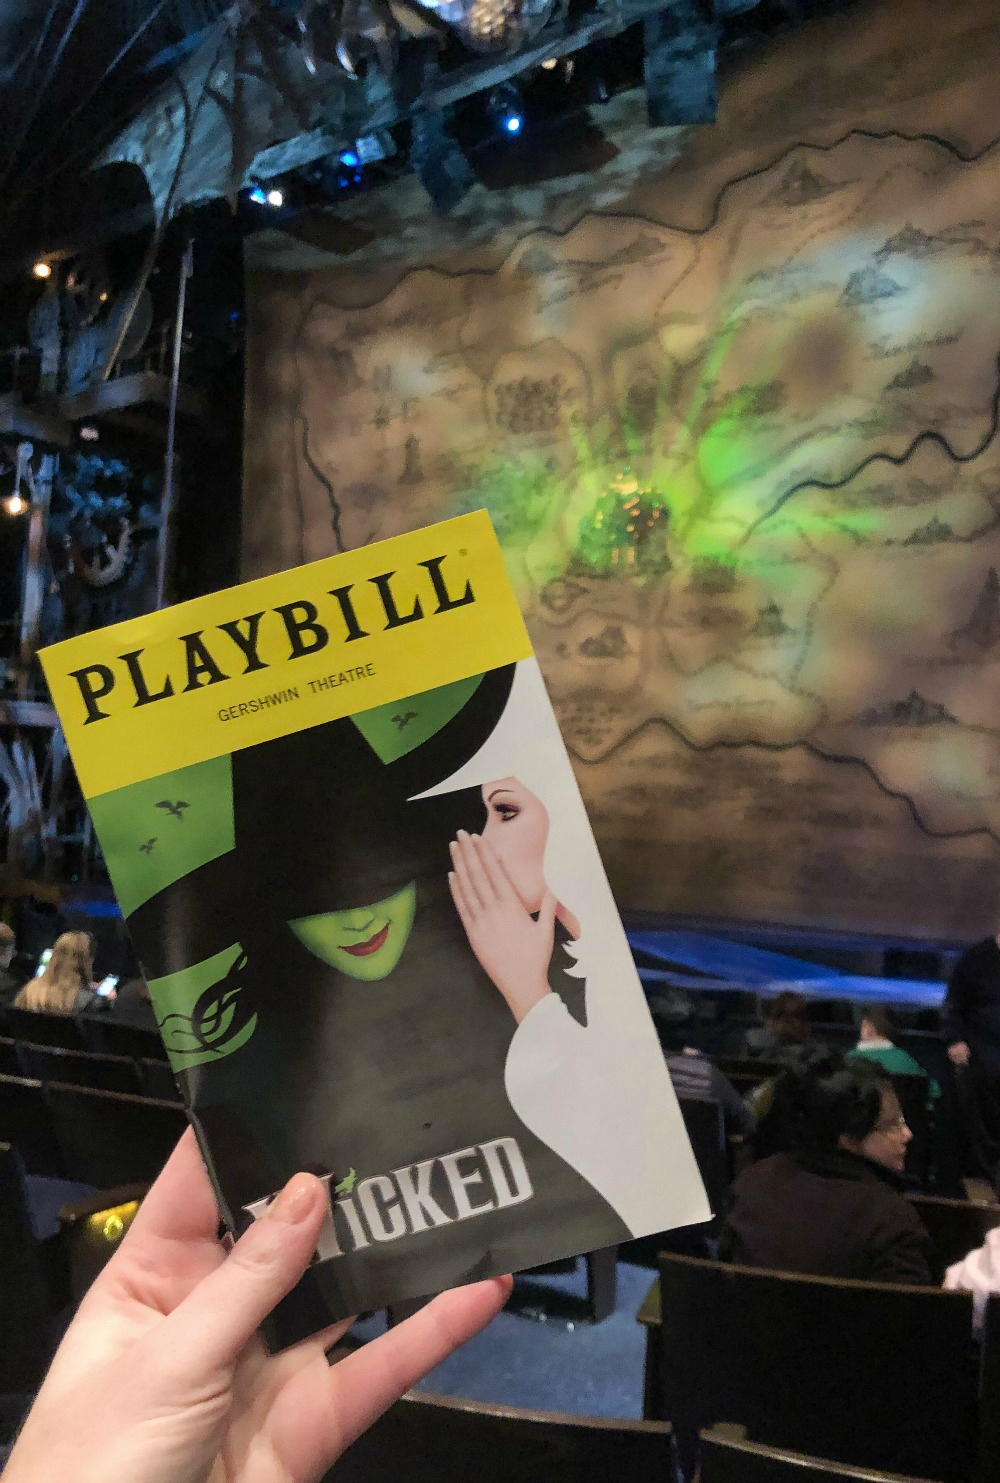 Affordable New York City Travel Guide I Wicked on Broadway #Travel #TravelGuide #NYC